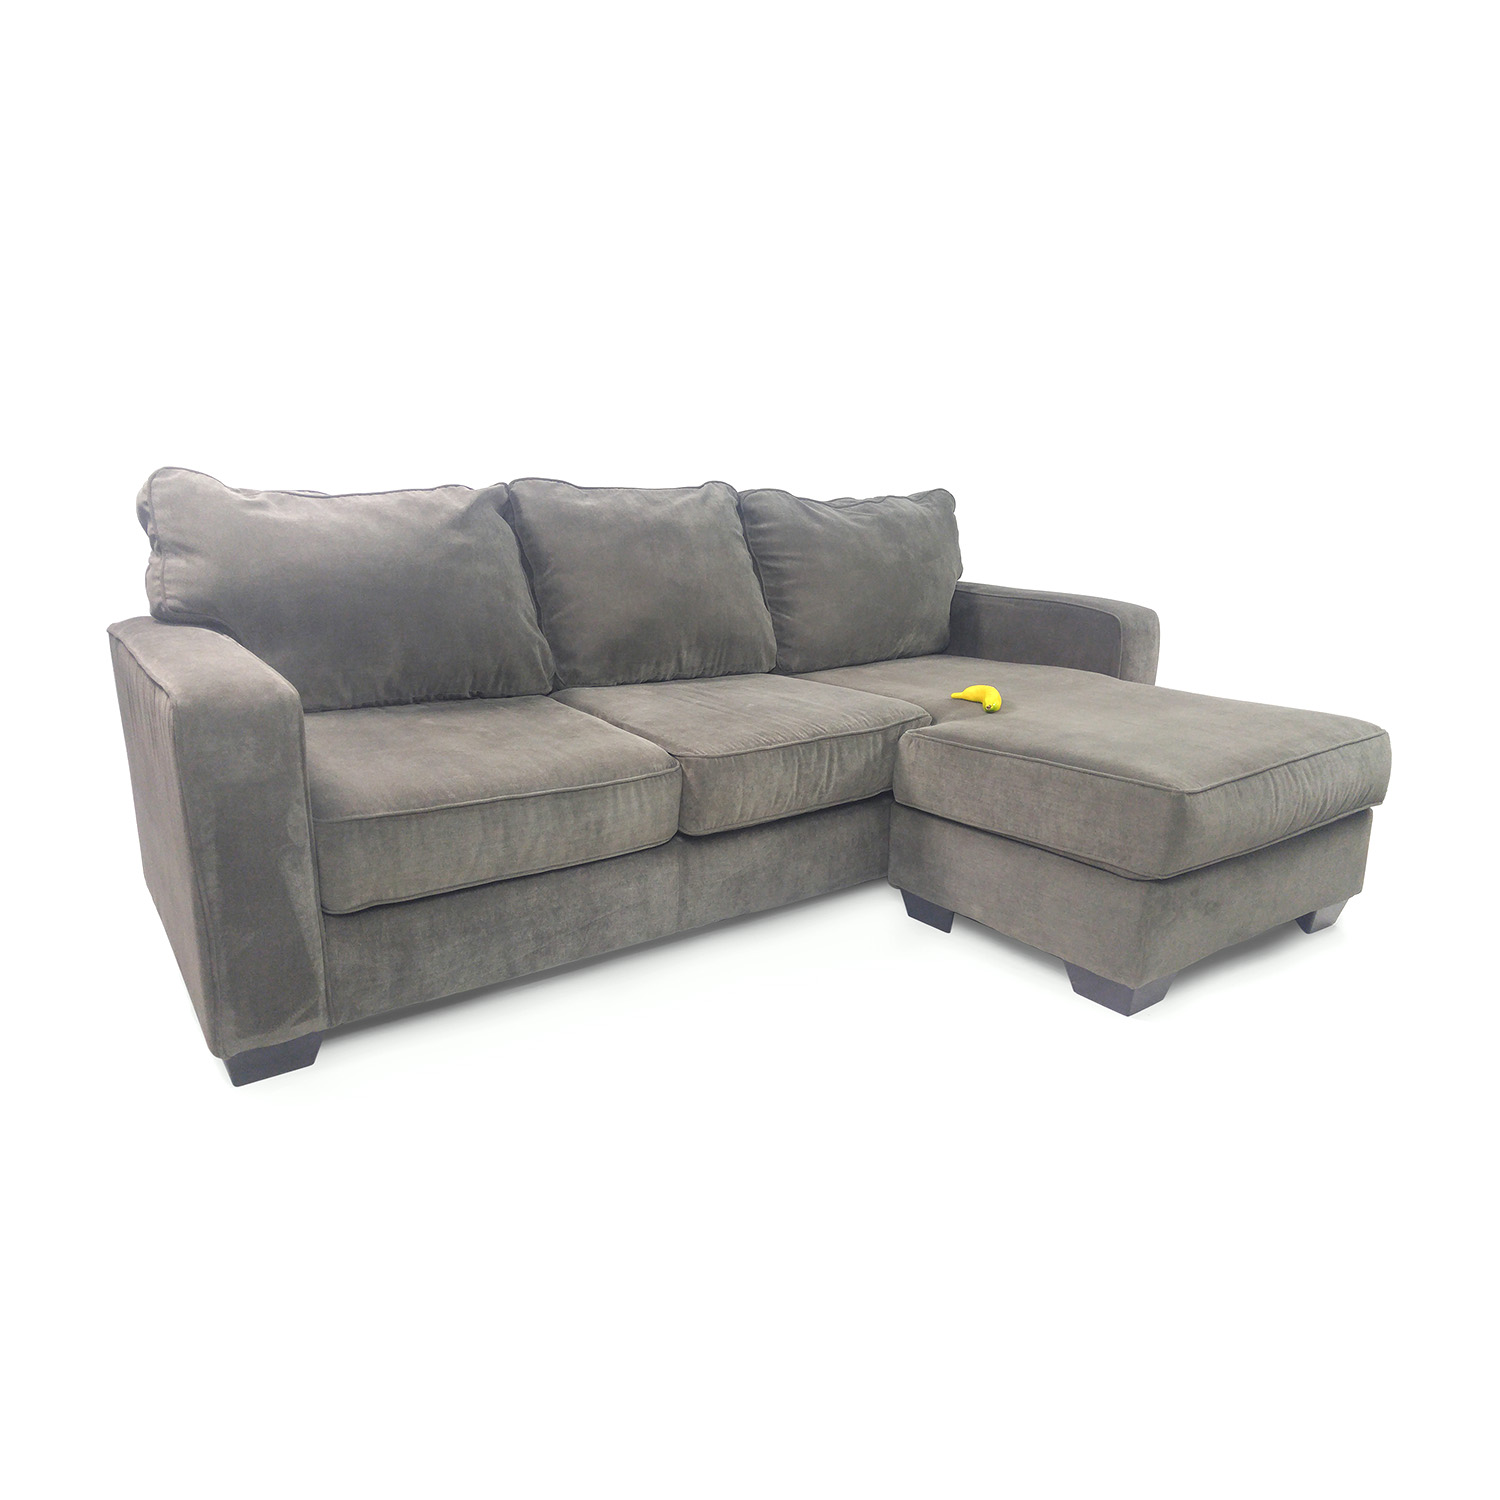 50 off ashley furniture hodan sofa chaise sofas for Ashley furniture couch with chaise